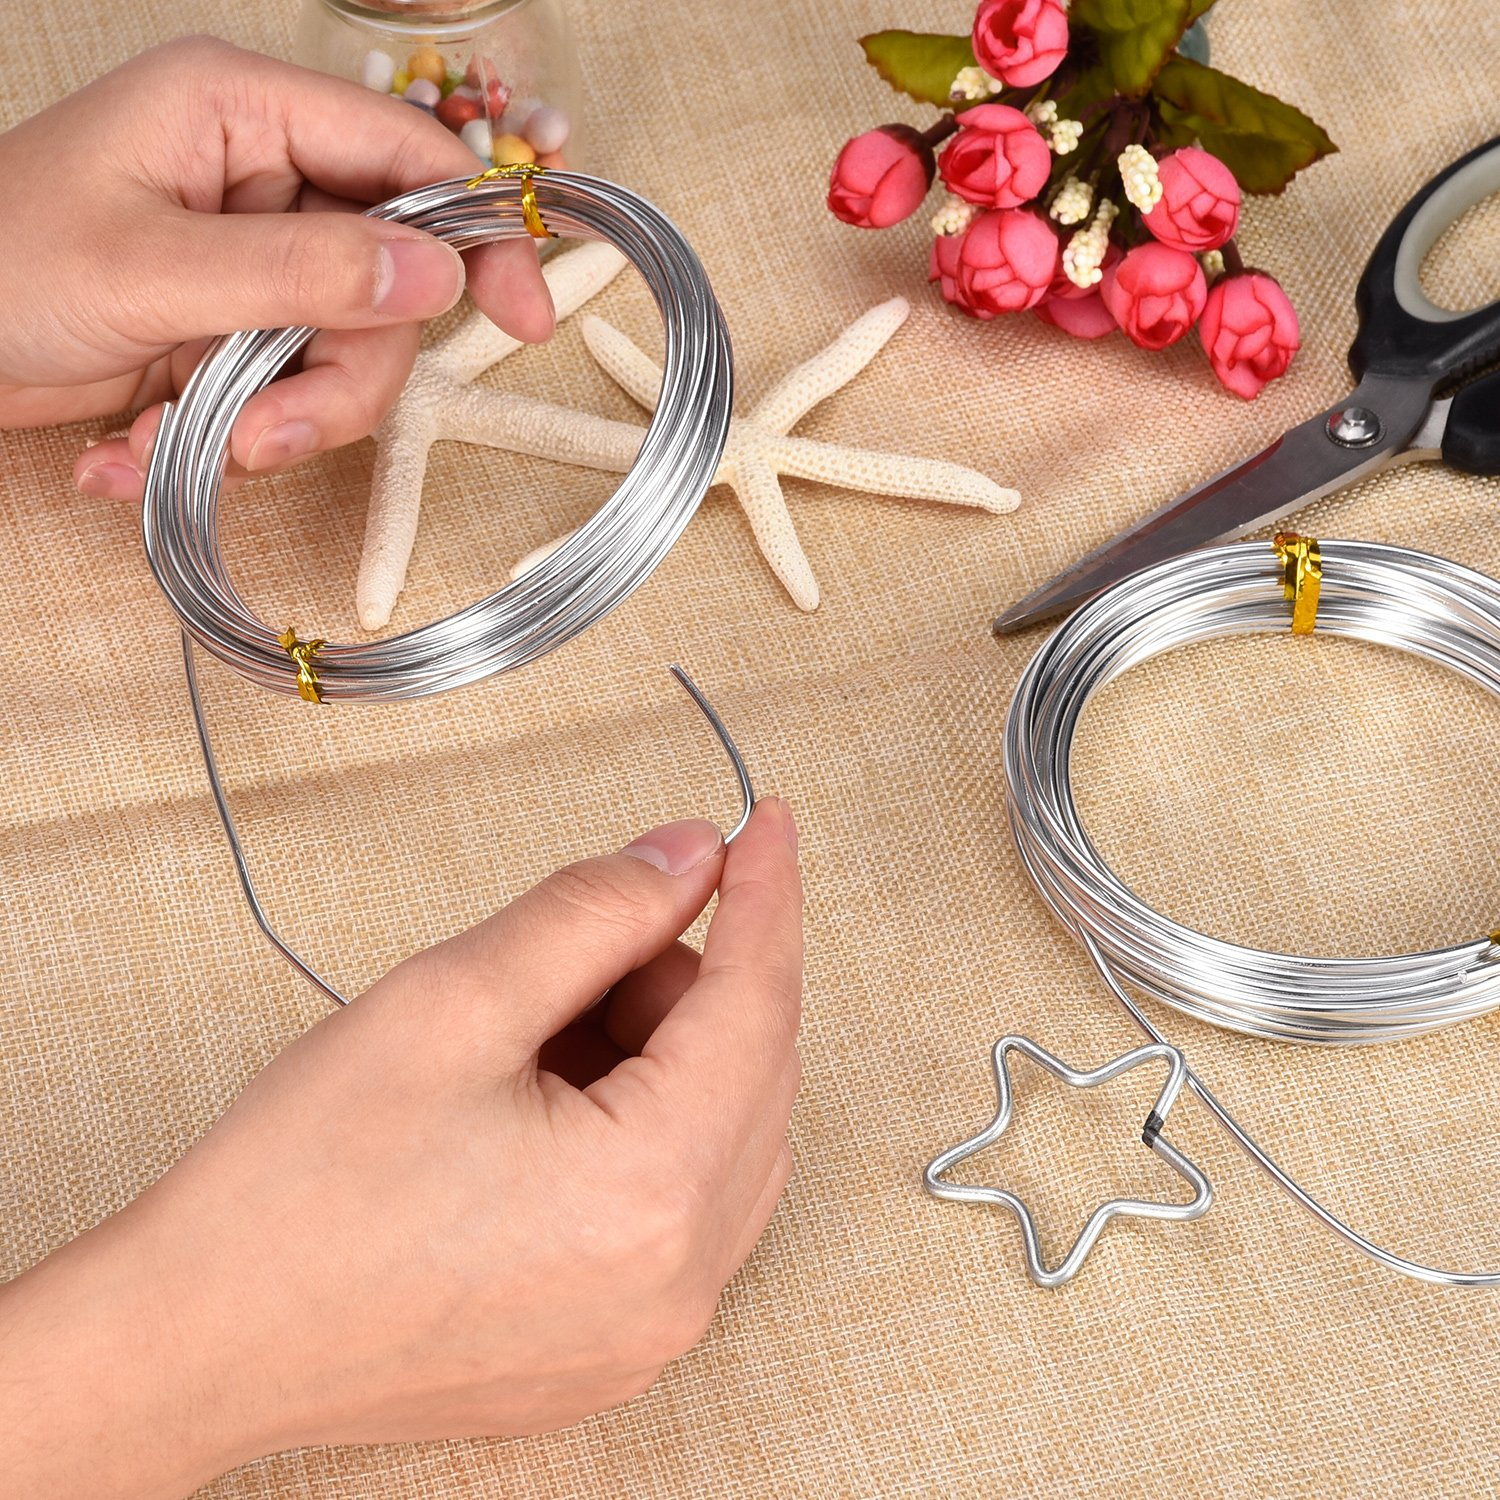 Tecunite 32 8 Feet Silver Aluminum Wire Bendable Metal Craft Wire For Making Dolls Skeleton Diy